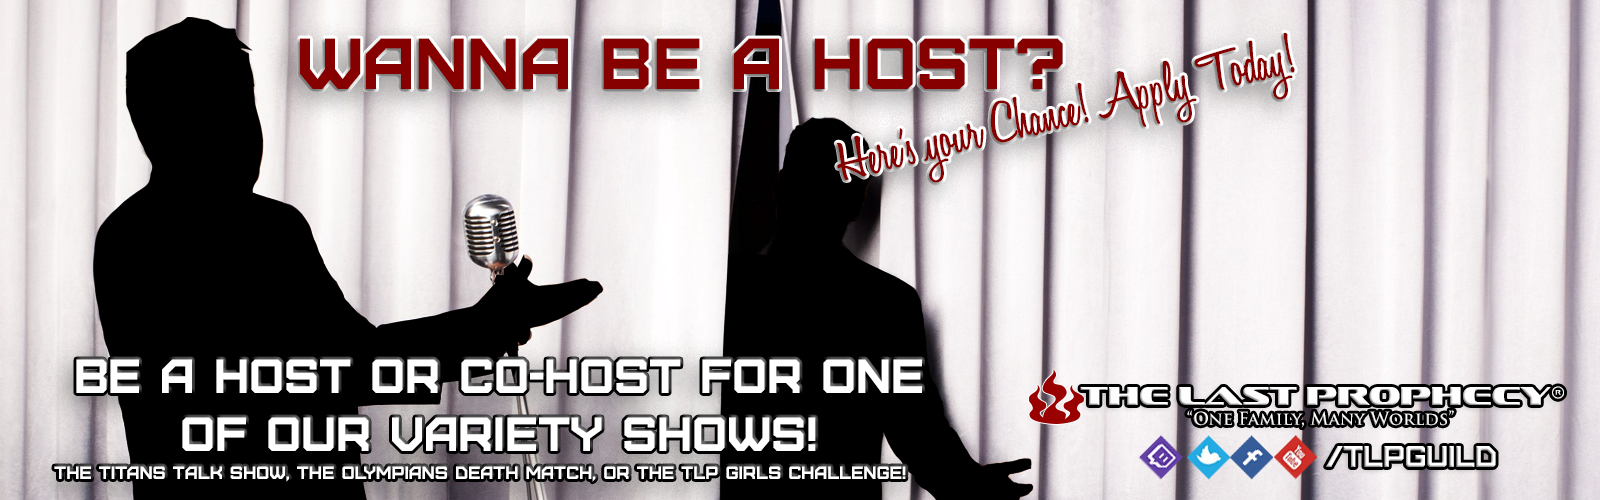 Wanna Be a Host?